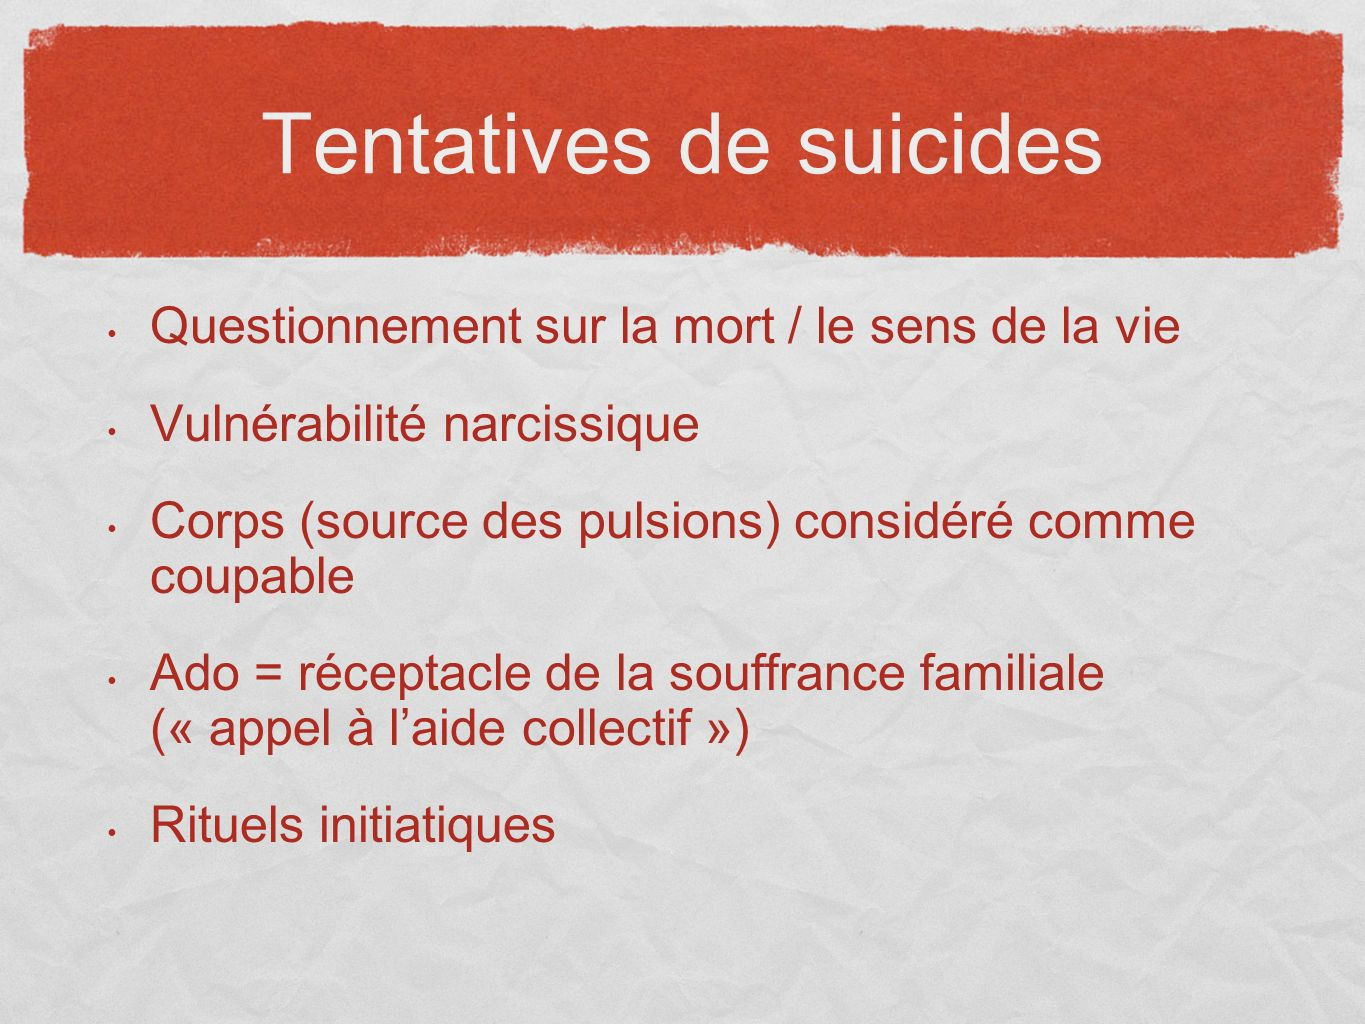 Tentatives de suicides